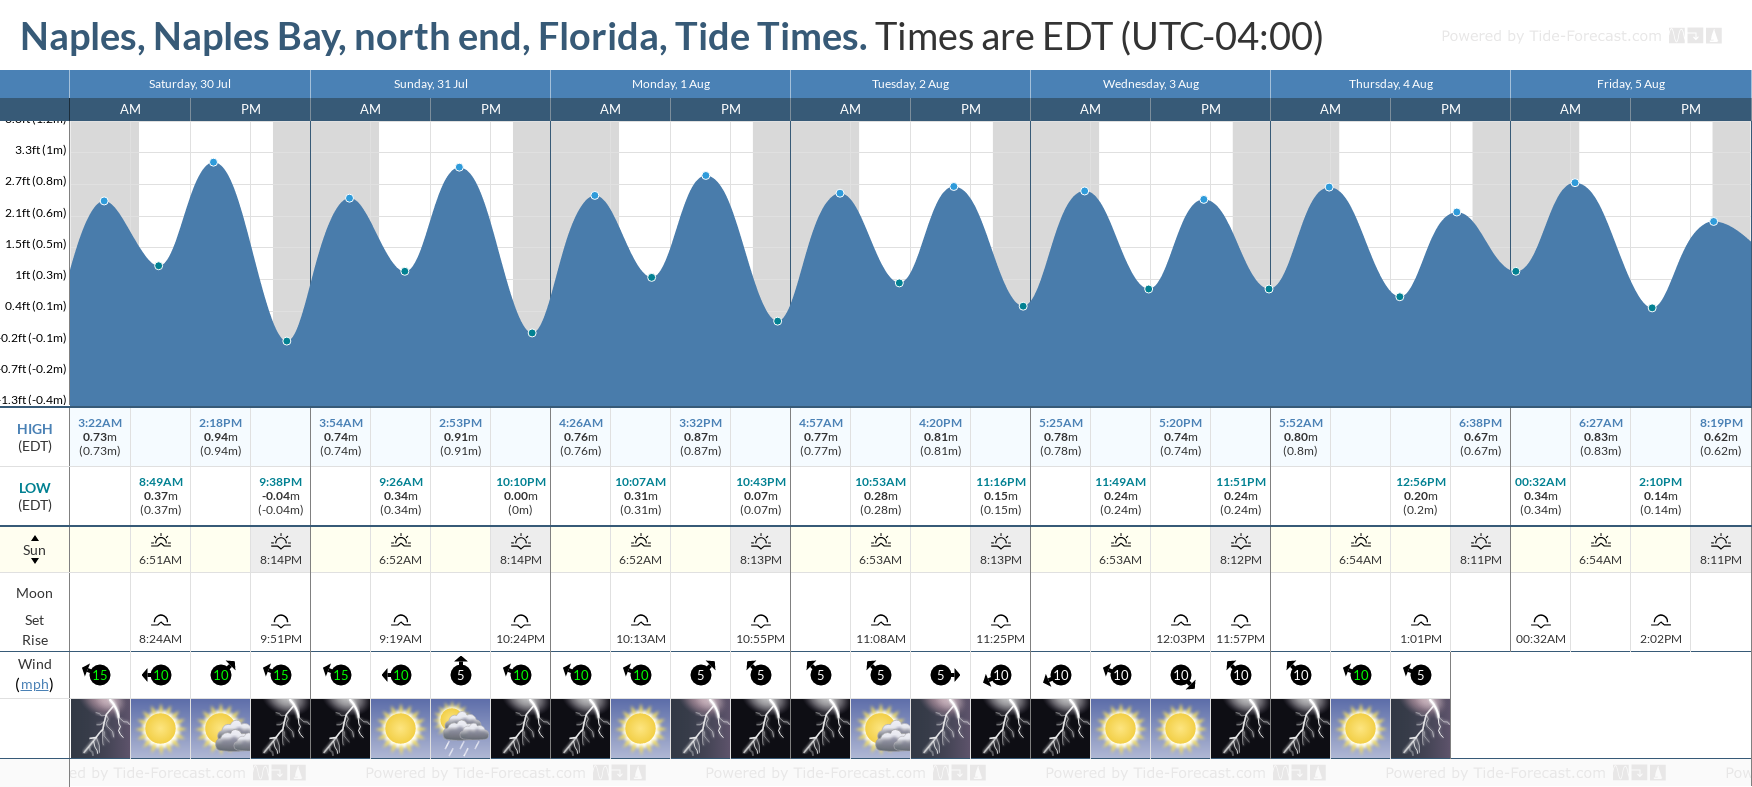 Naples, Naples Bay, north end, Florida Tide Chart including high and low tide tide times for the next 7 days